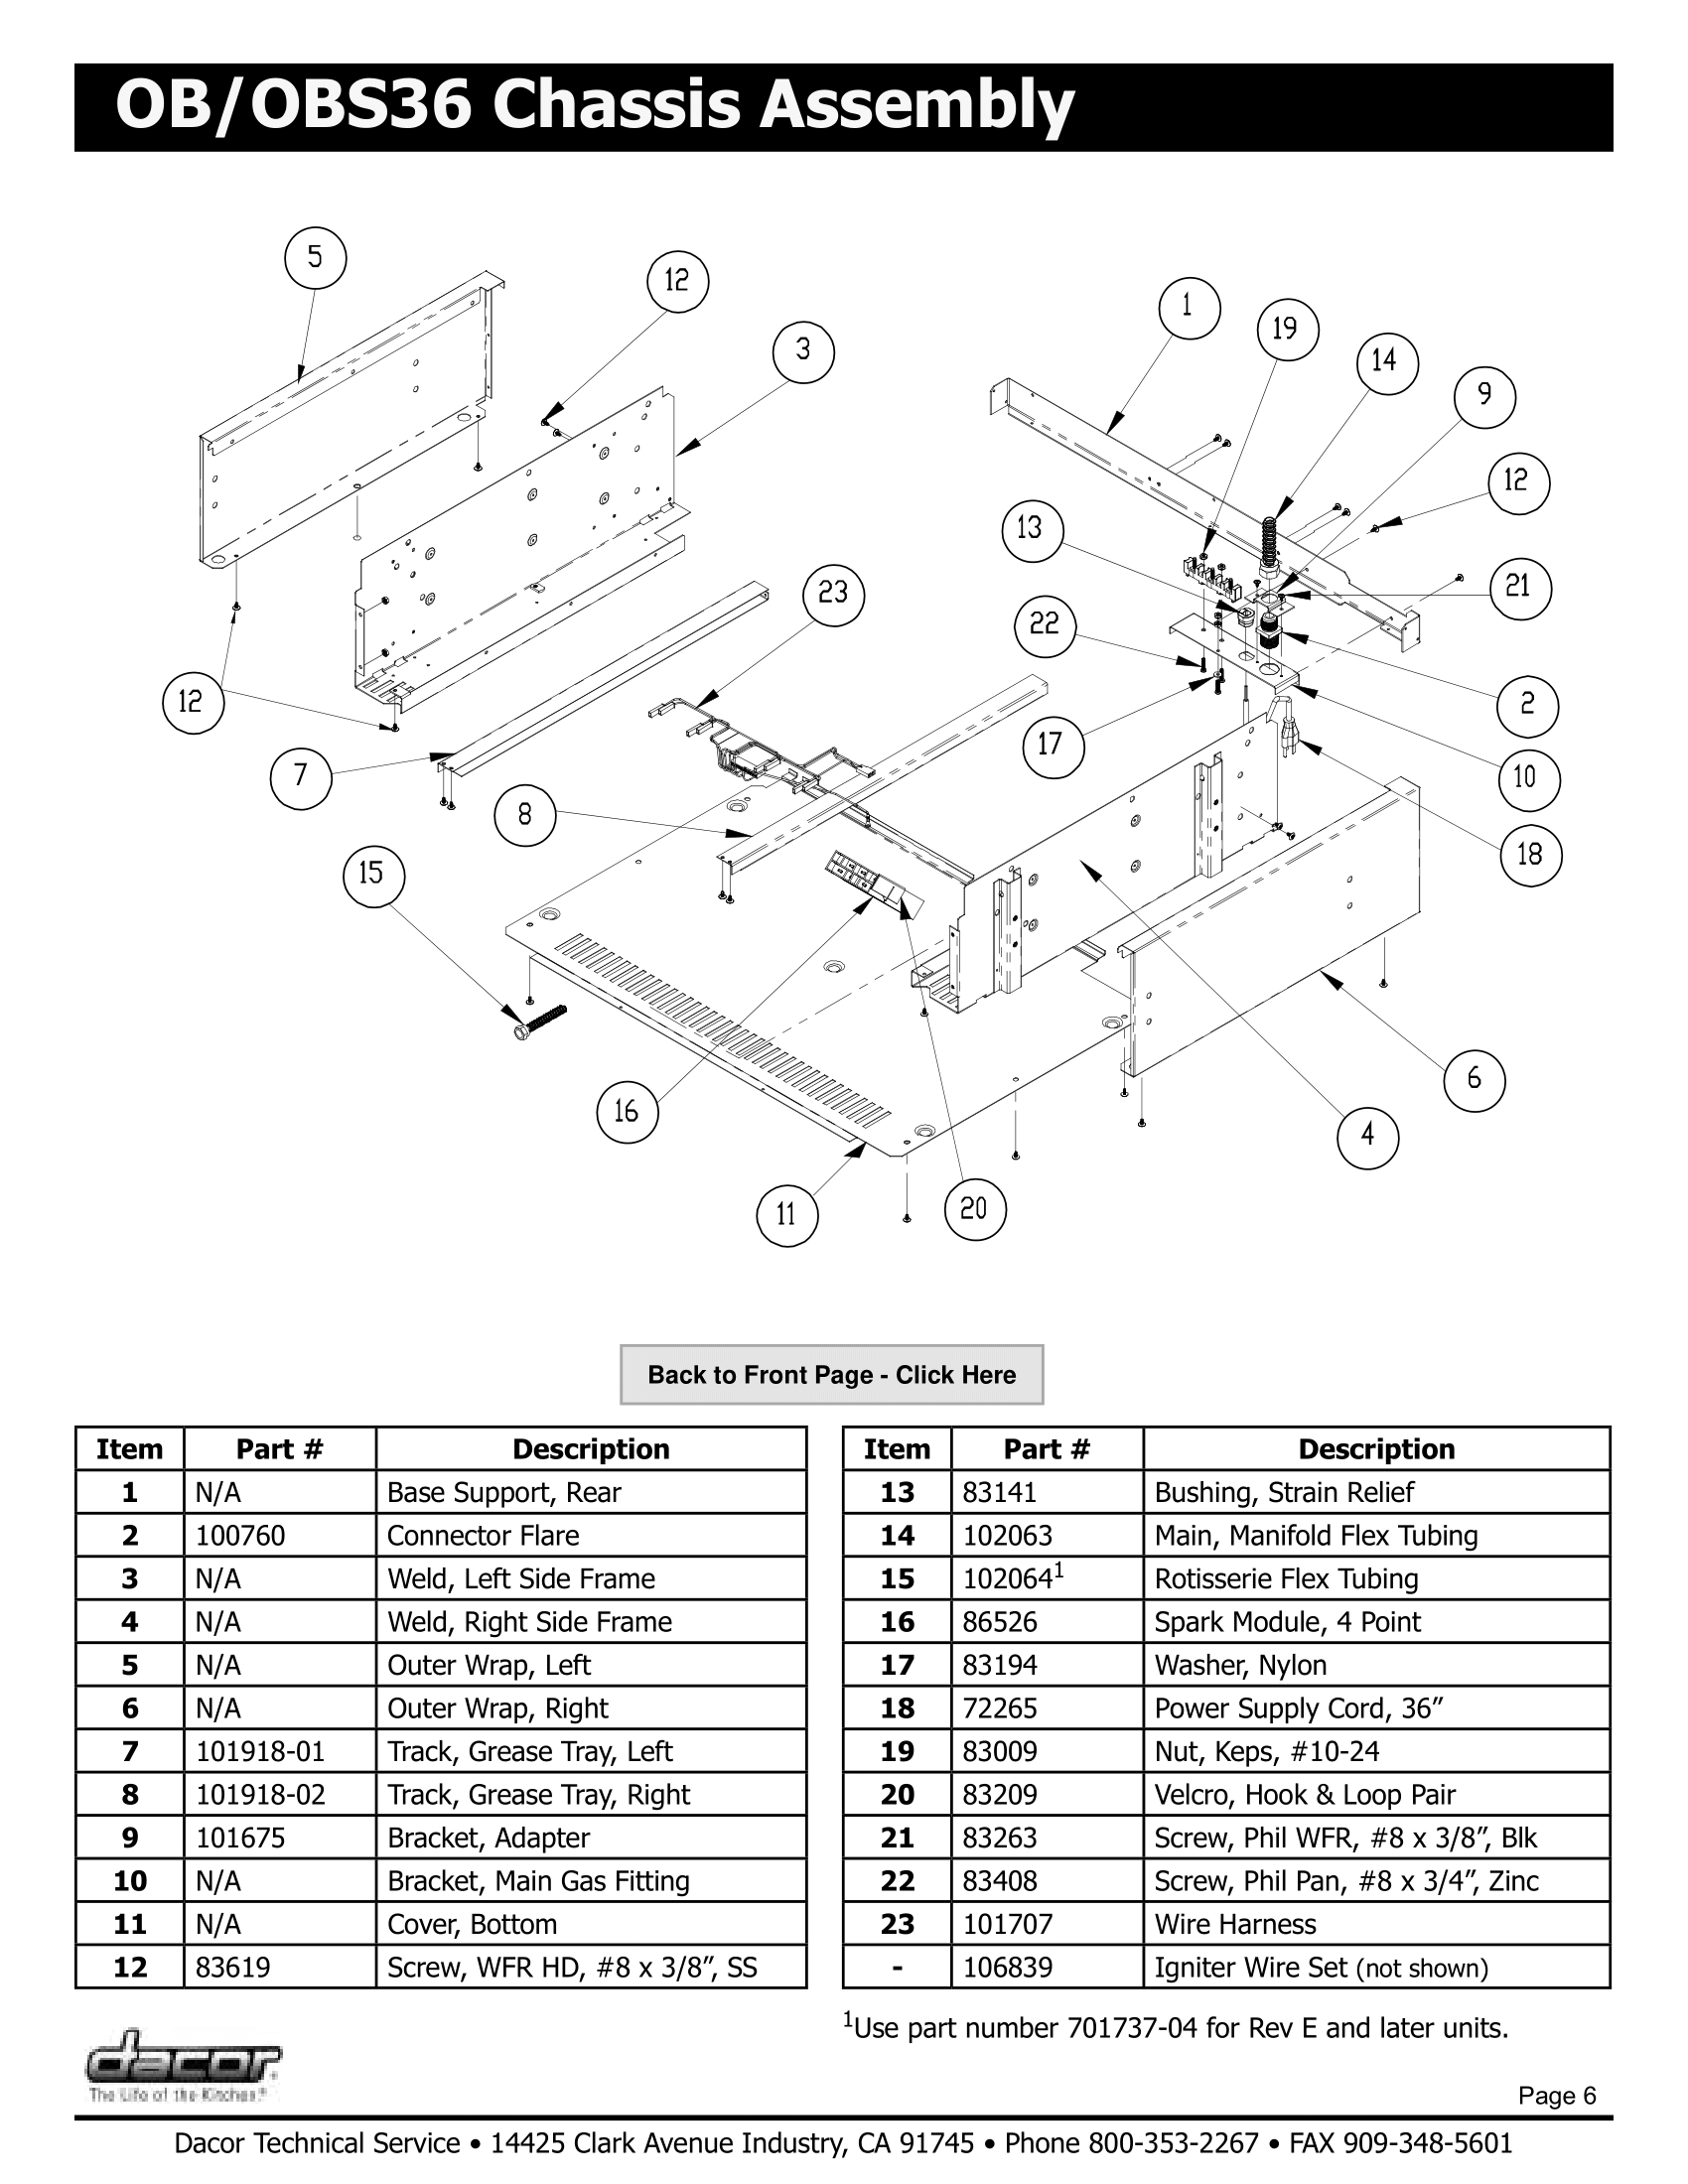 Dacor OBS36 Chassis Assembly Schematic